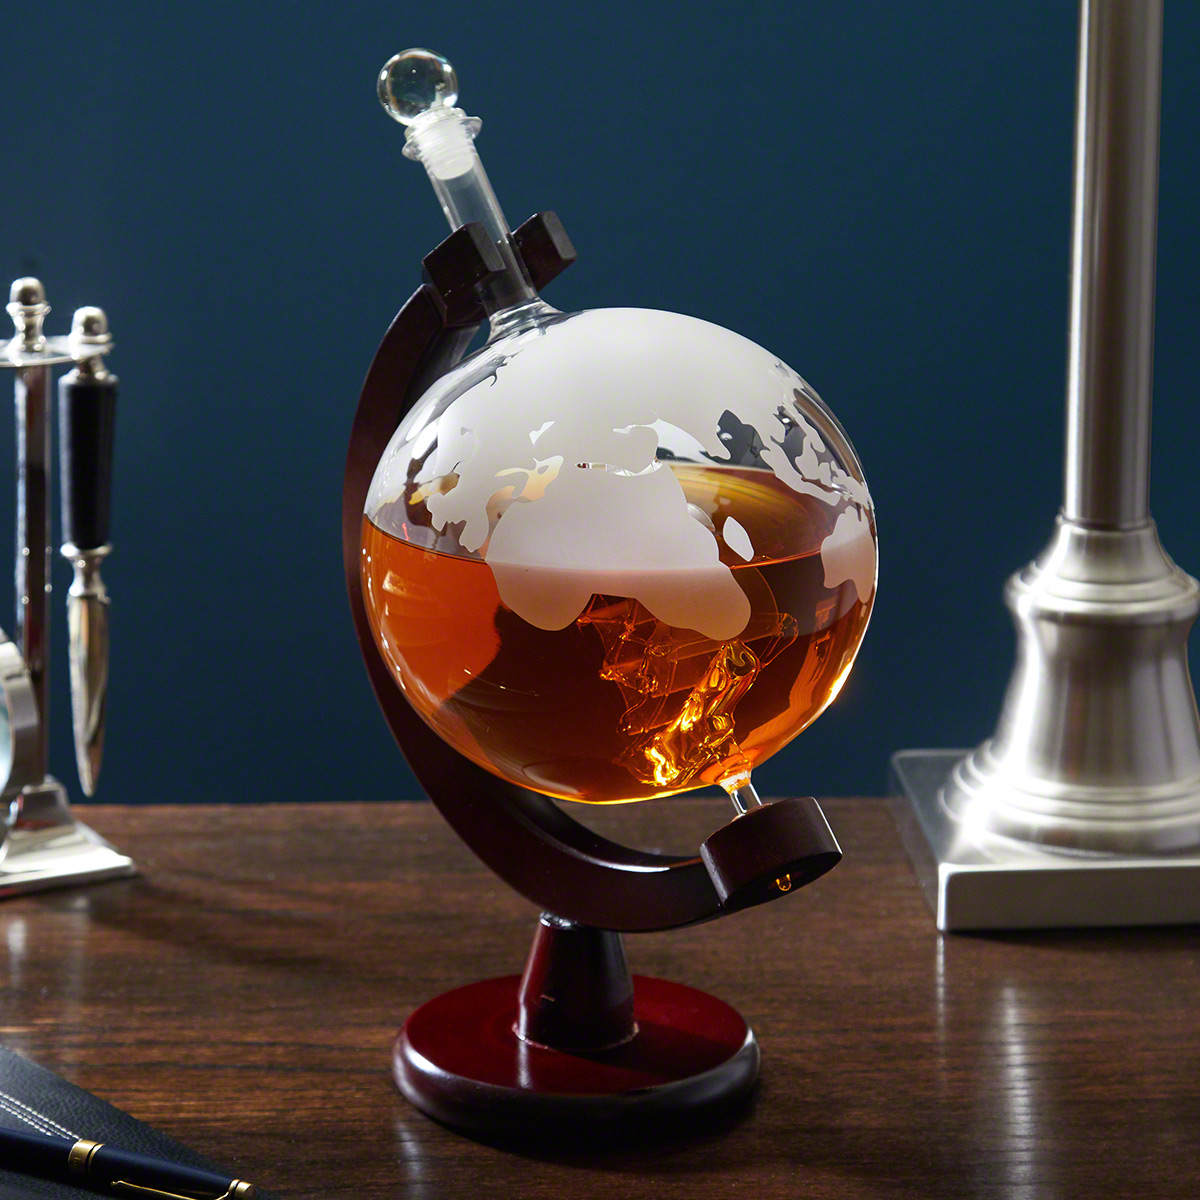 Waterman Liquor Decanter Globe with Wood Stand, Large